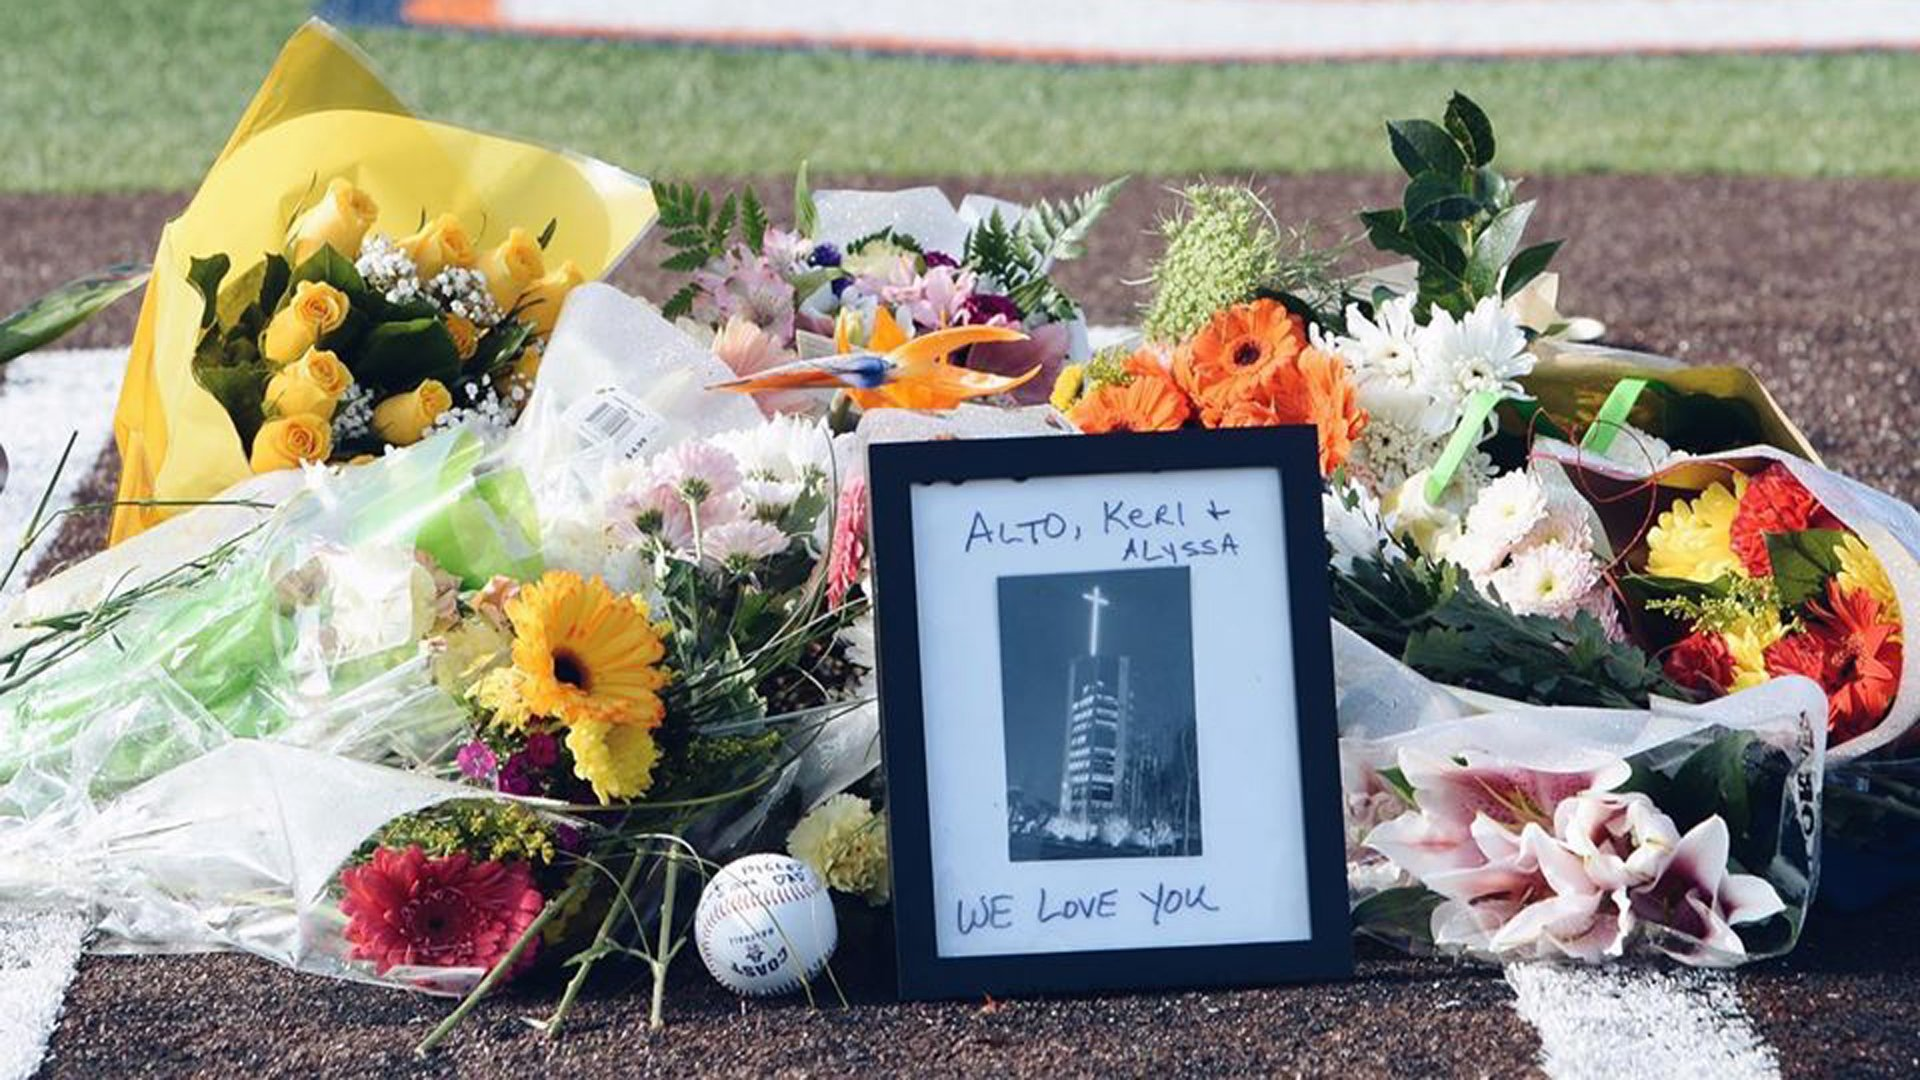 Orange Coast College pays tribute to the Altobelli family in this photo posted on the school's Facebook page on Jan. 31, 2020.